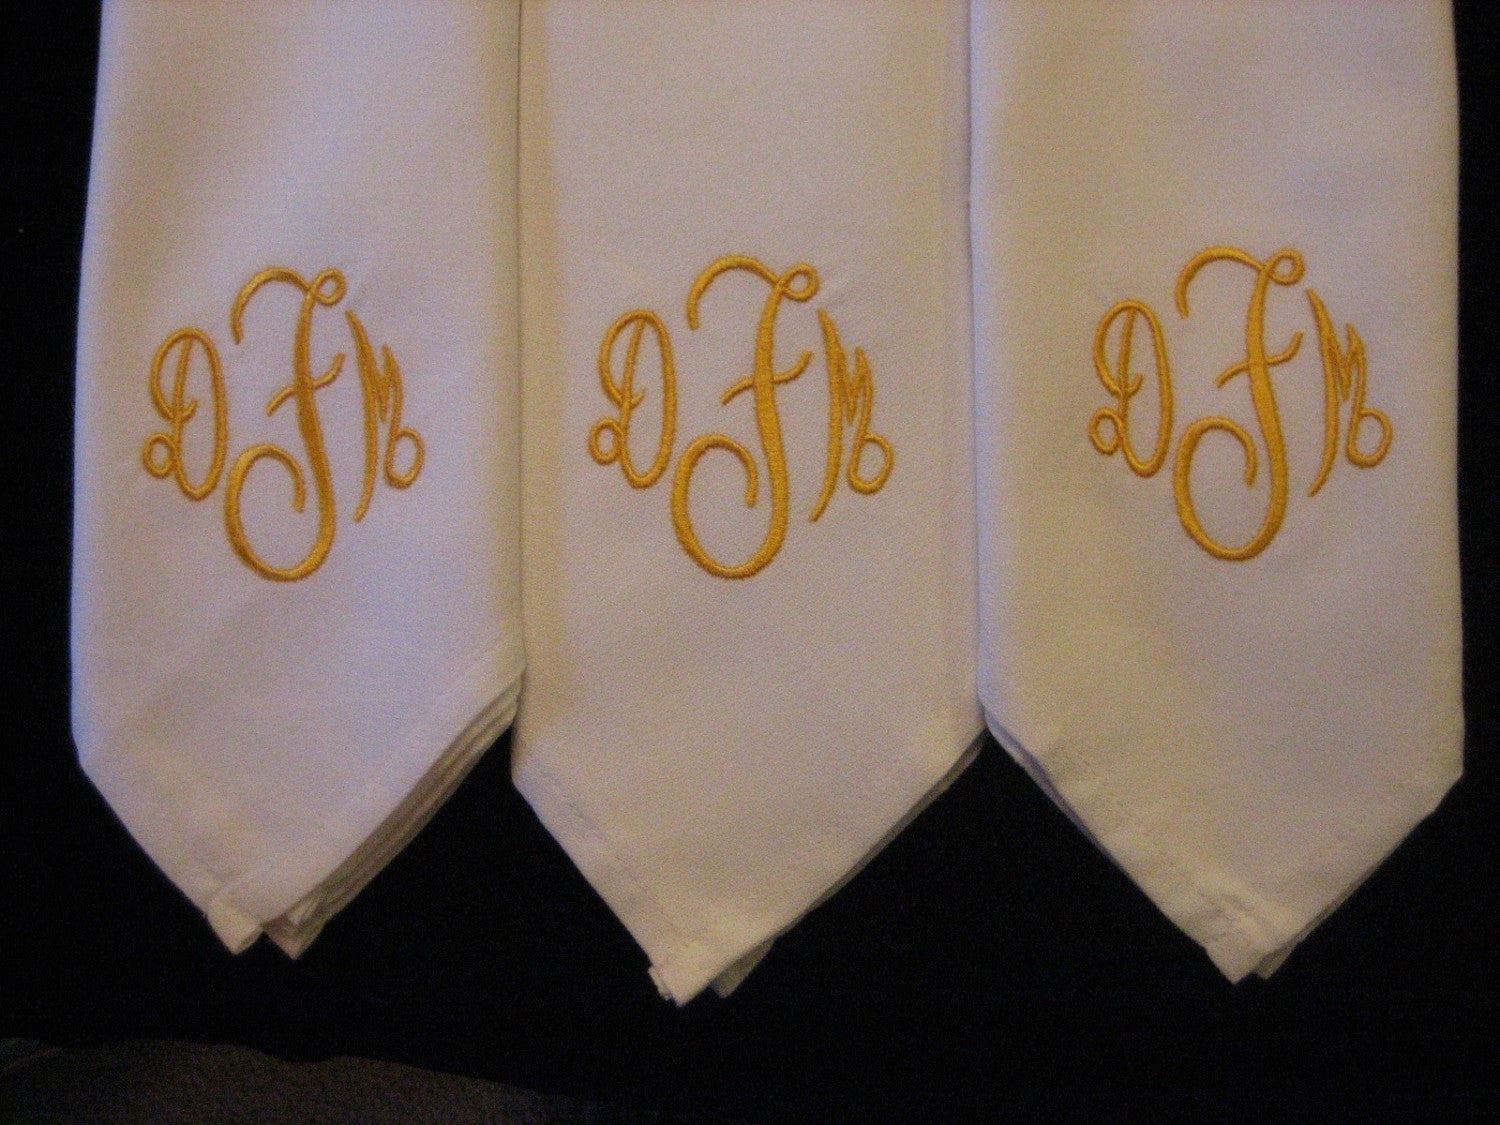 12 Monogrammed  dinner napkins includes shipping in the US